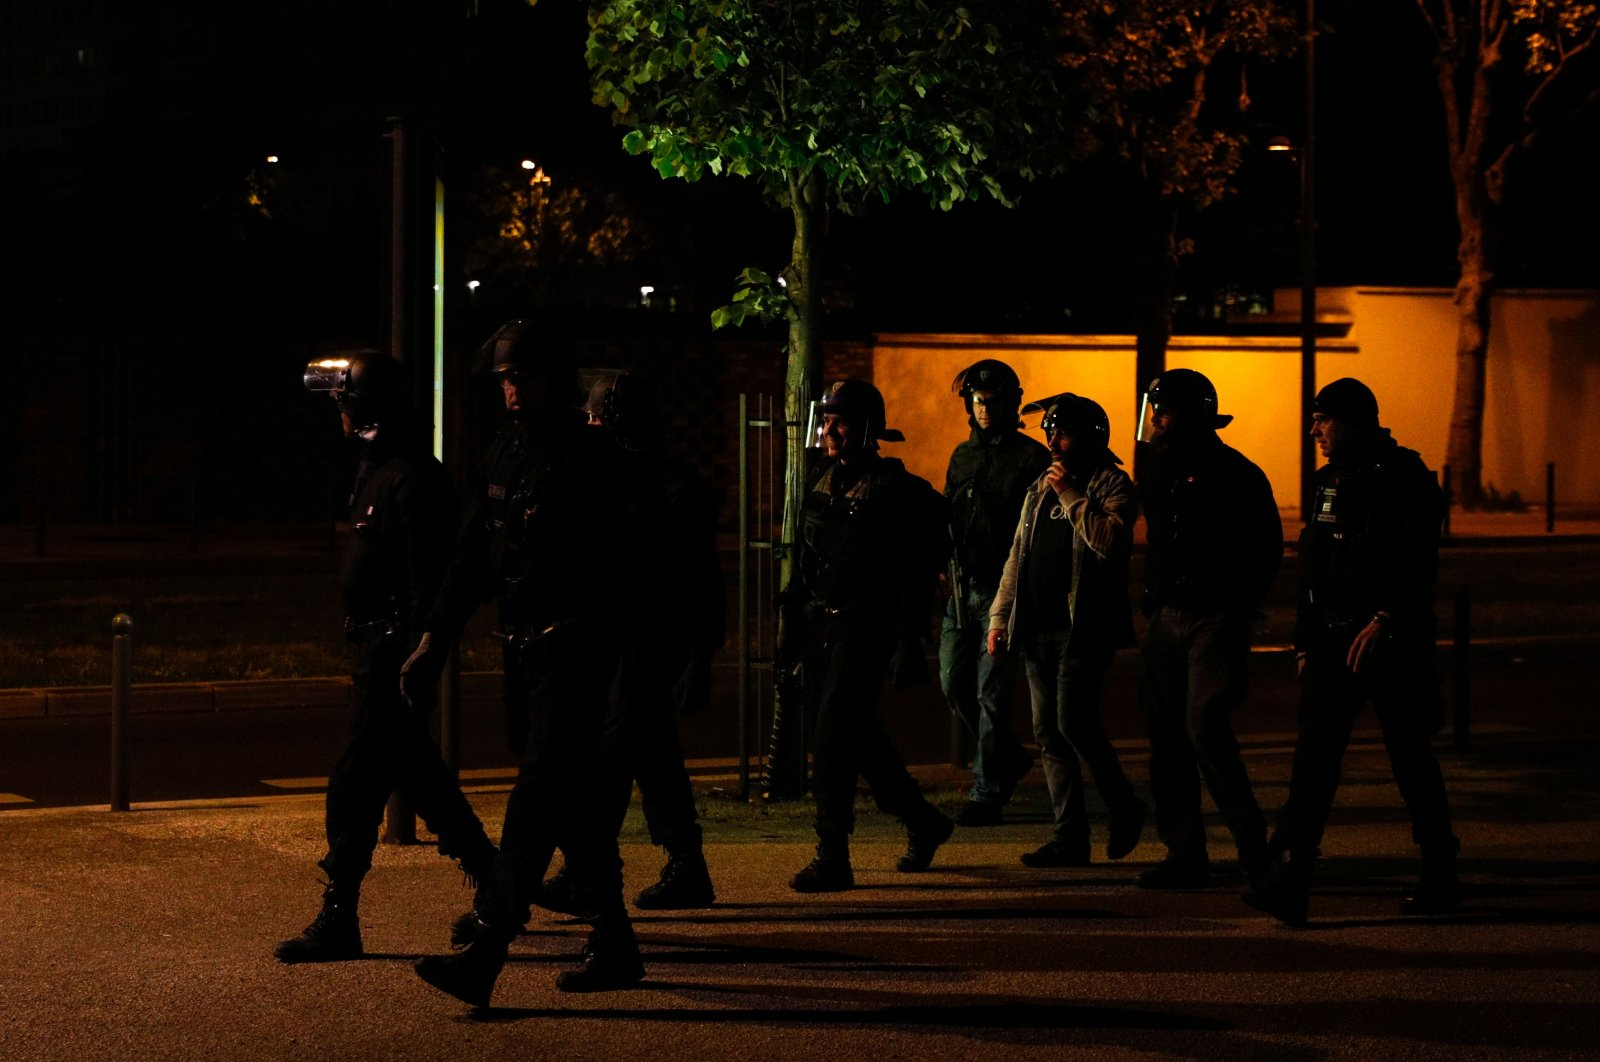 Plainclothes police and CRS anti-riot police officers walk in Villeneuve-la-Garenne, in the northern suburbs of Paris, early on April 20, 2020. (AFP Photo)